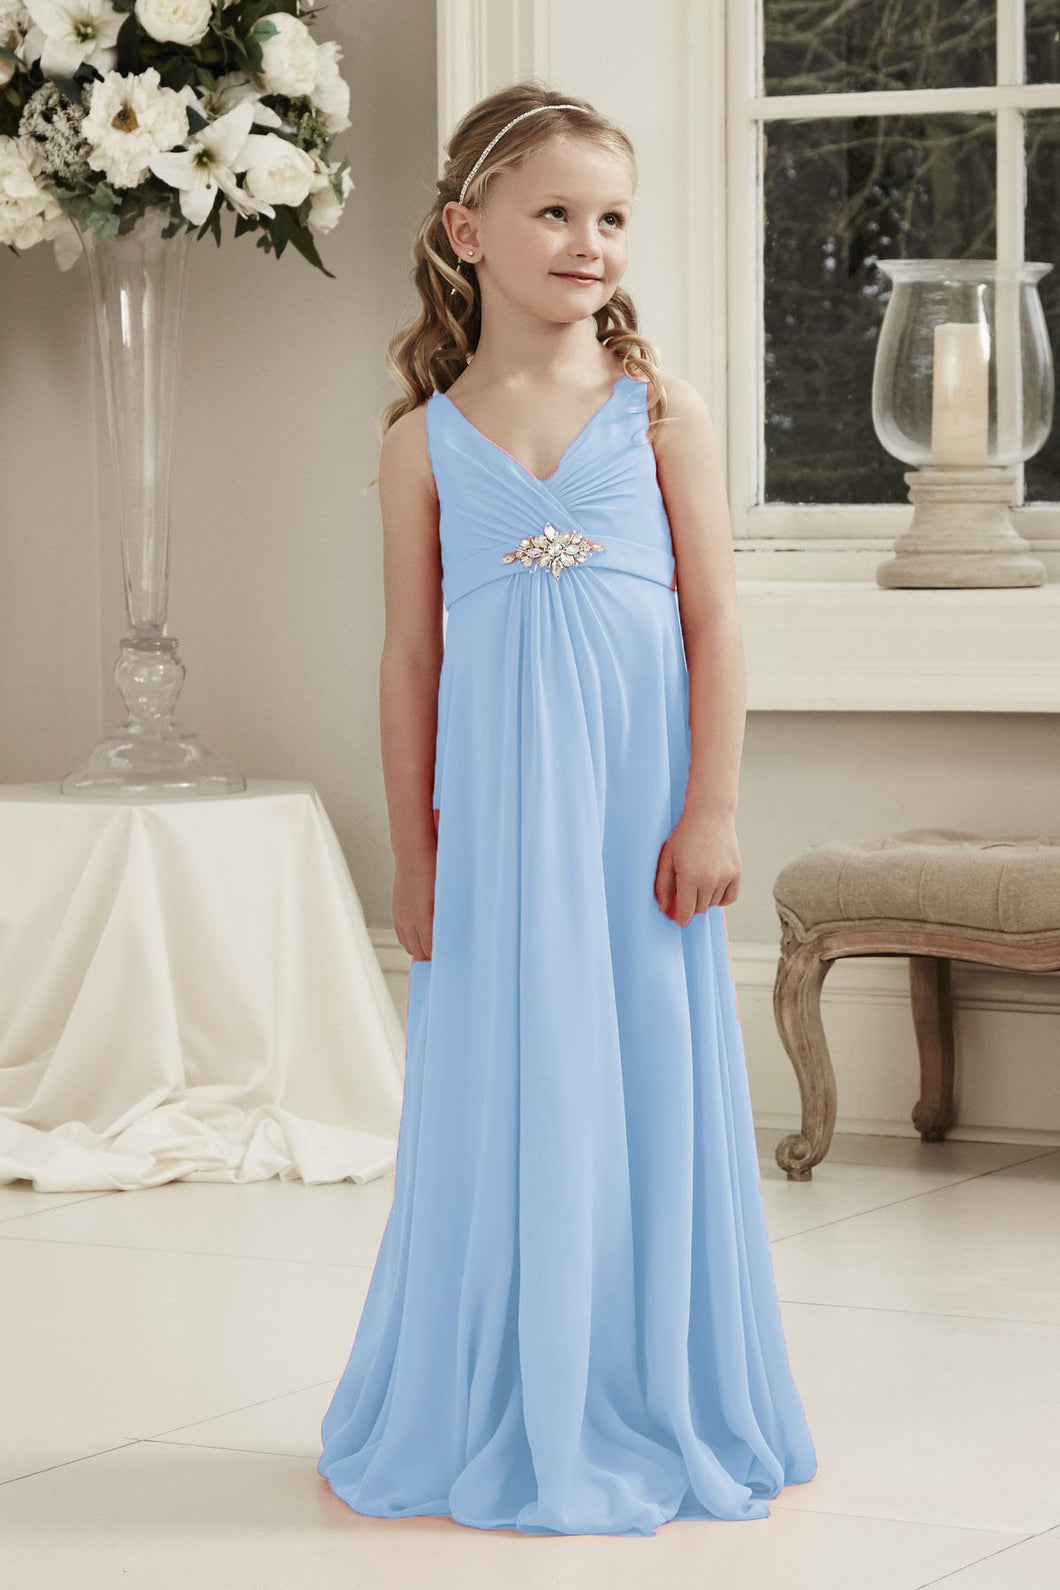 Molly Pale Light Pastel Blue V Neck Junior Flower Girl Bridesmaid Wedding Party Special Occasion Dress Girls Toddler Baby UK